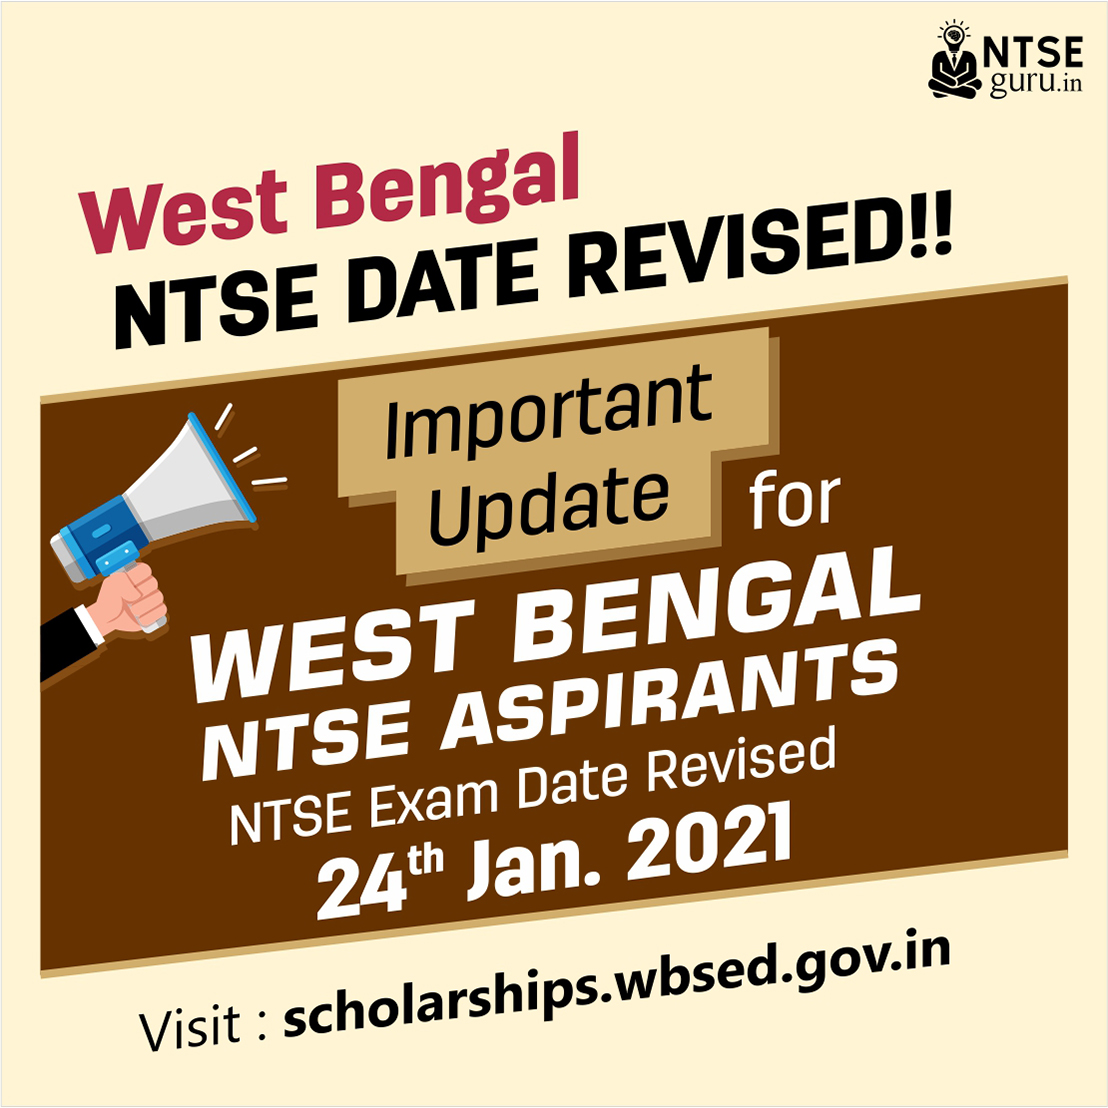 West Bengal NTSE Exam Date